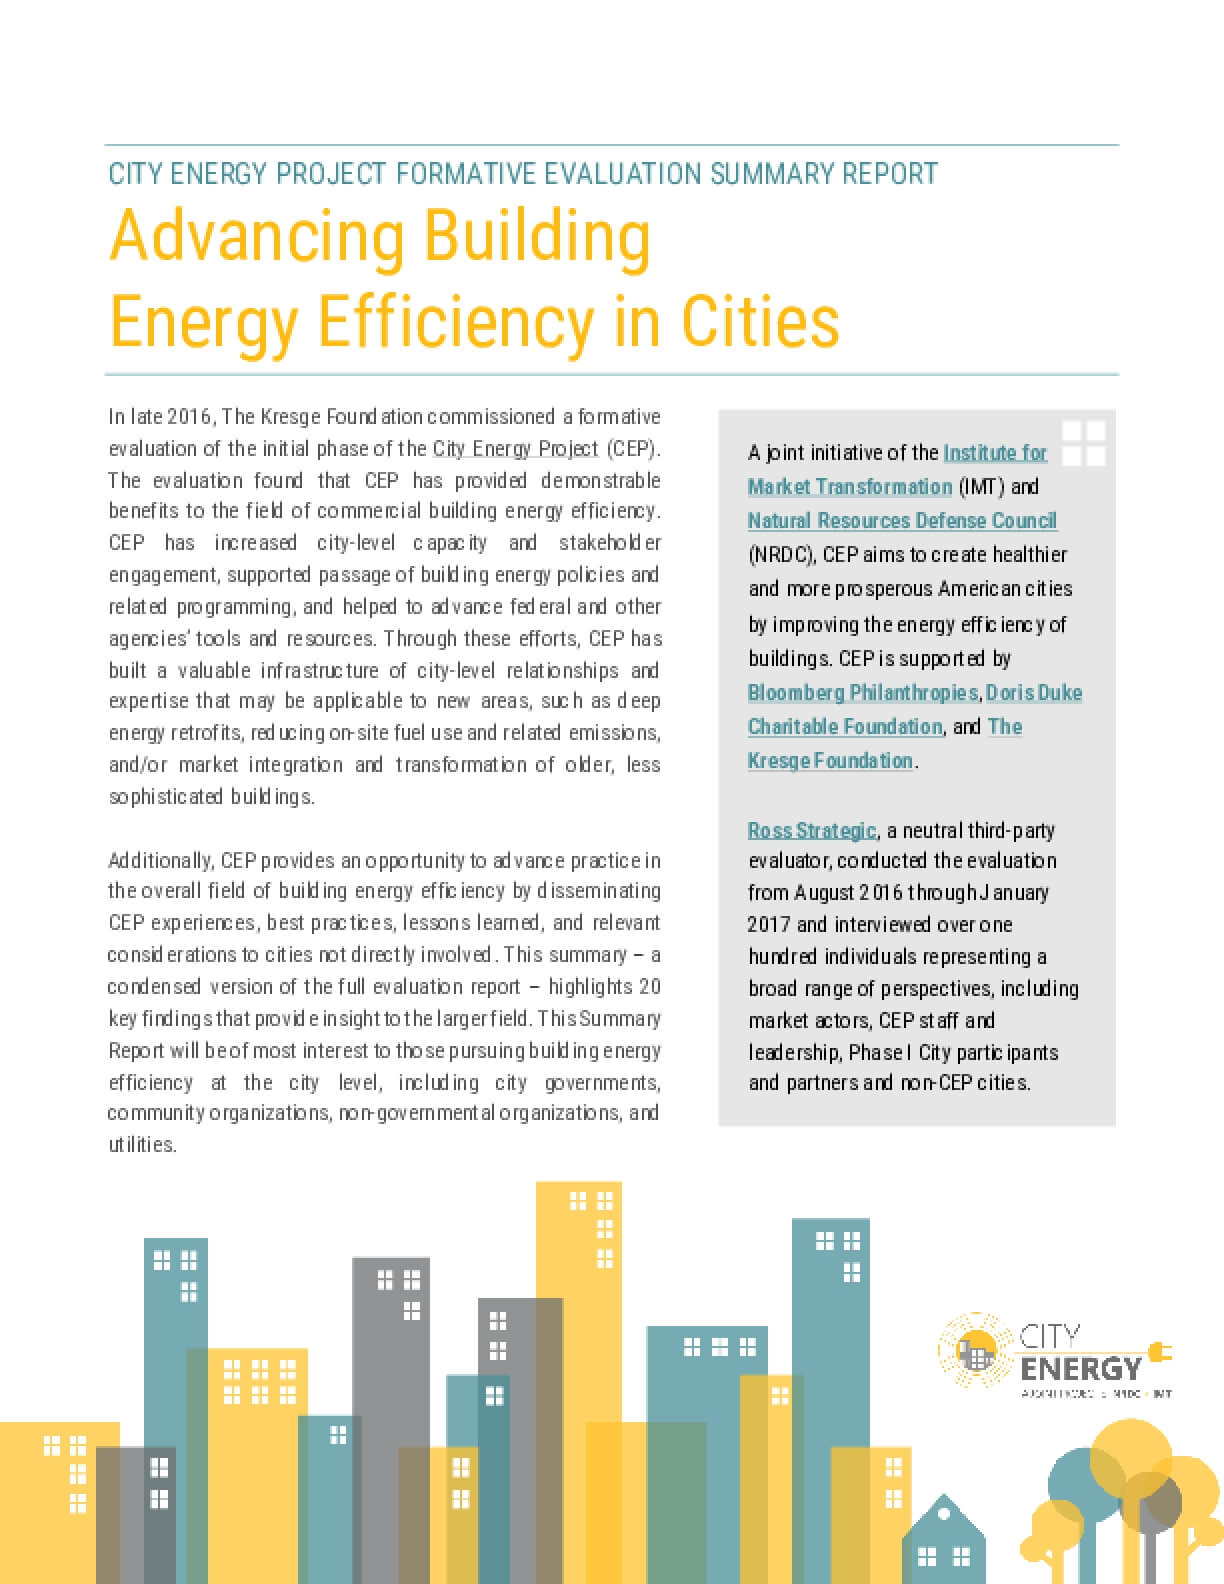 City Energy Project Formative Evaluation Summary Report:  Advancing Building Energy Efficiency in Cities